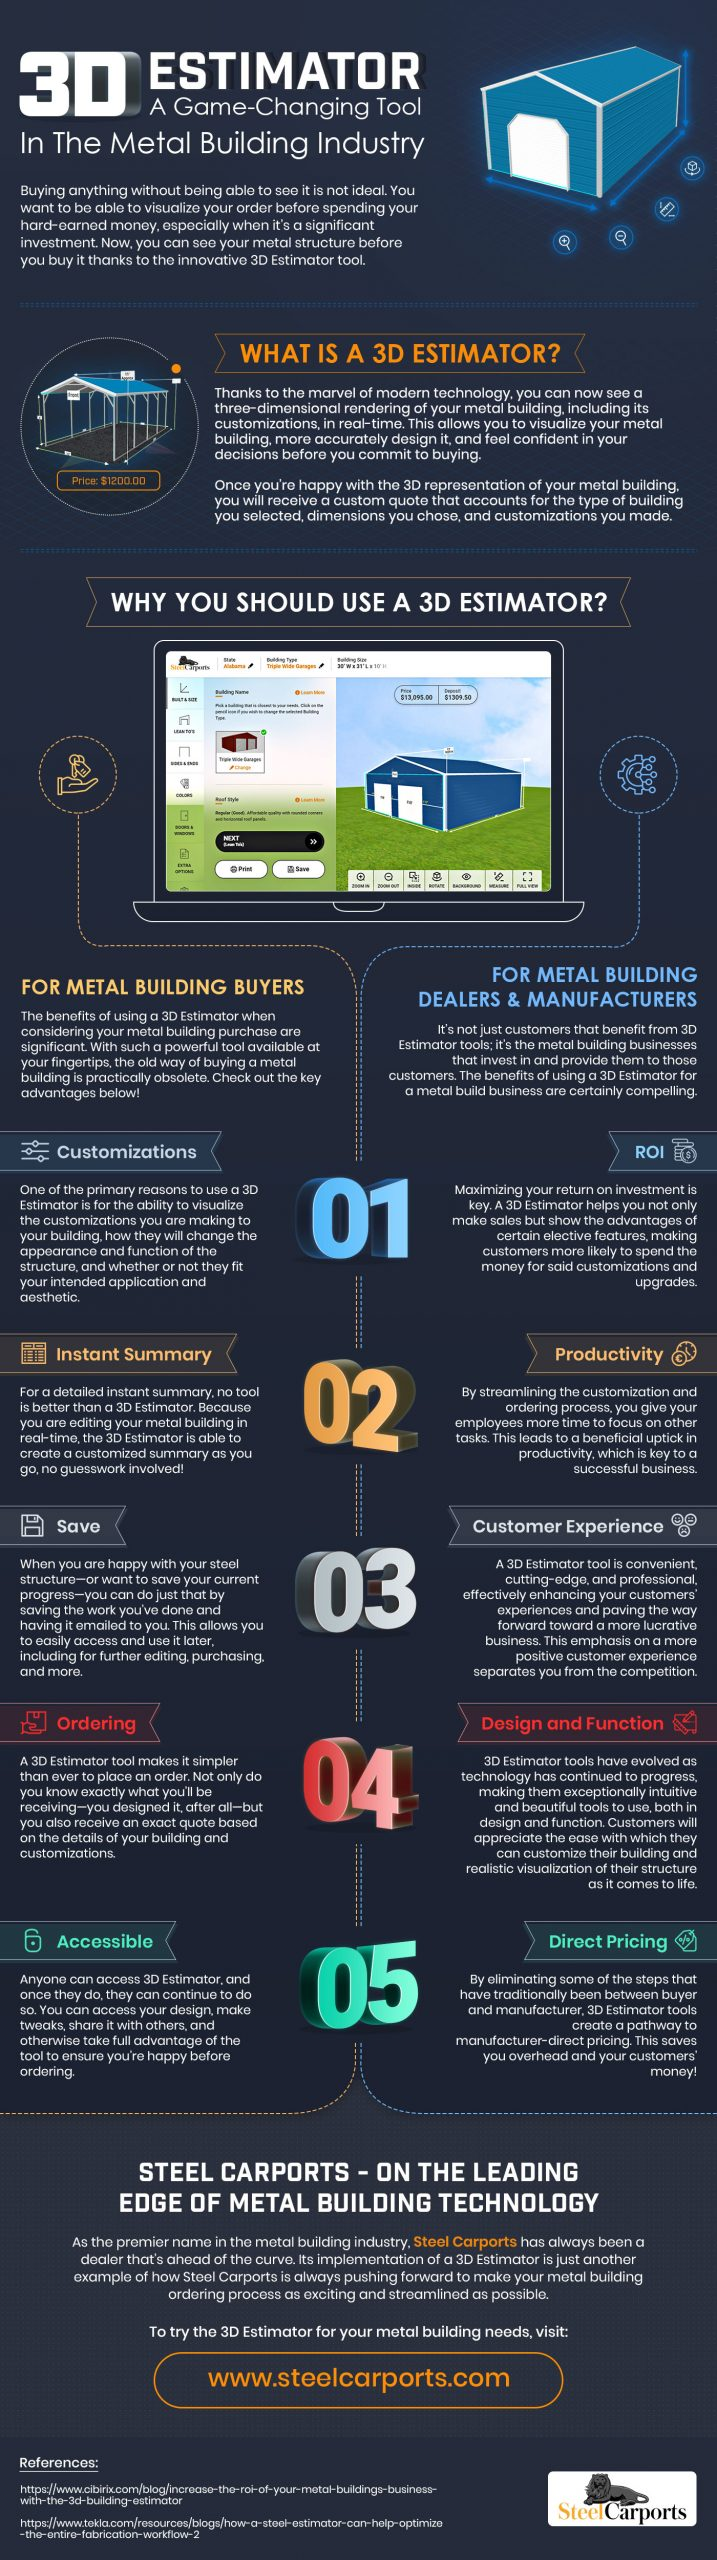 3D Estimator – A Game Changing Tool in the Metal Building Industry